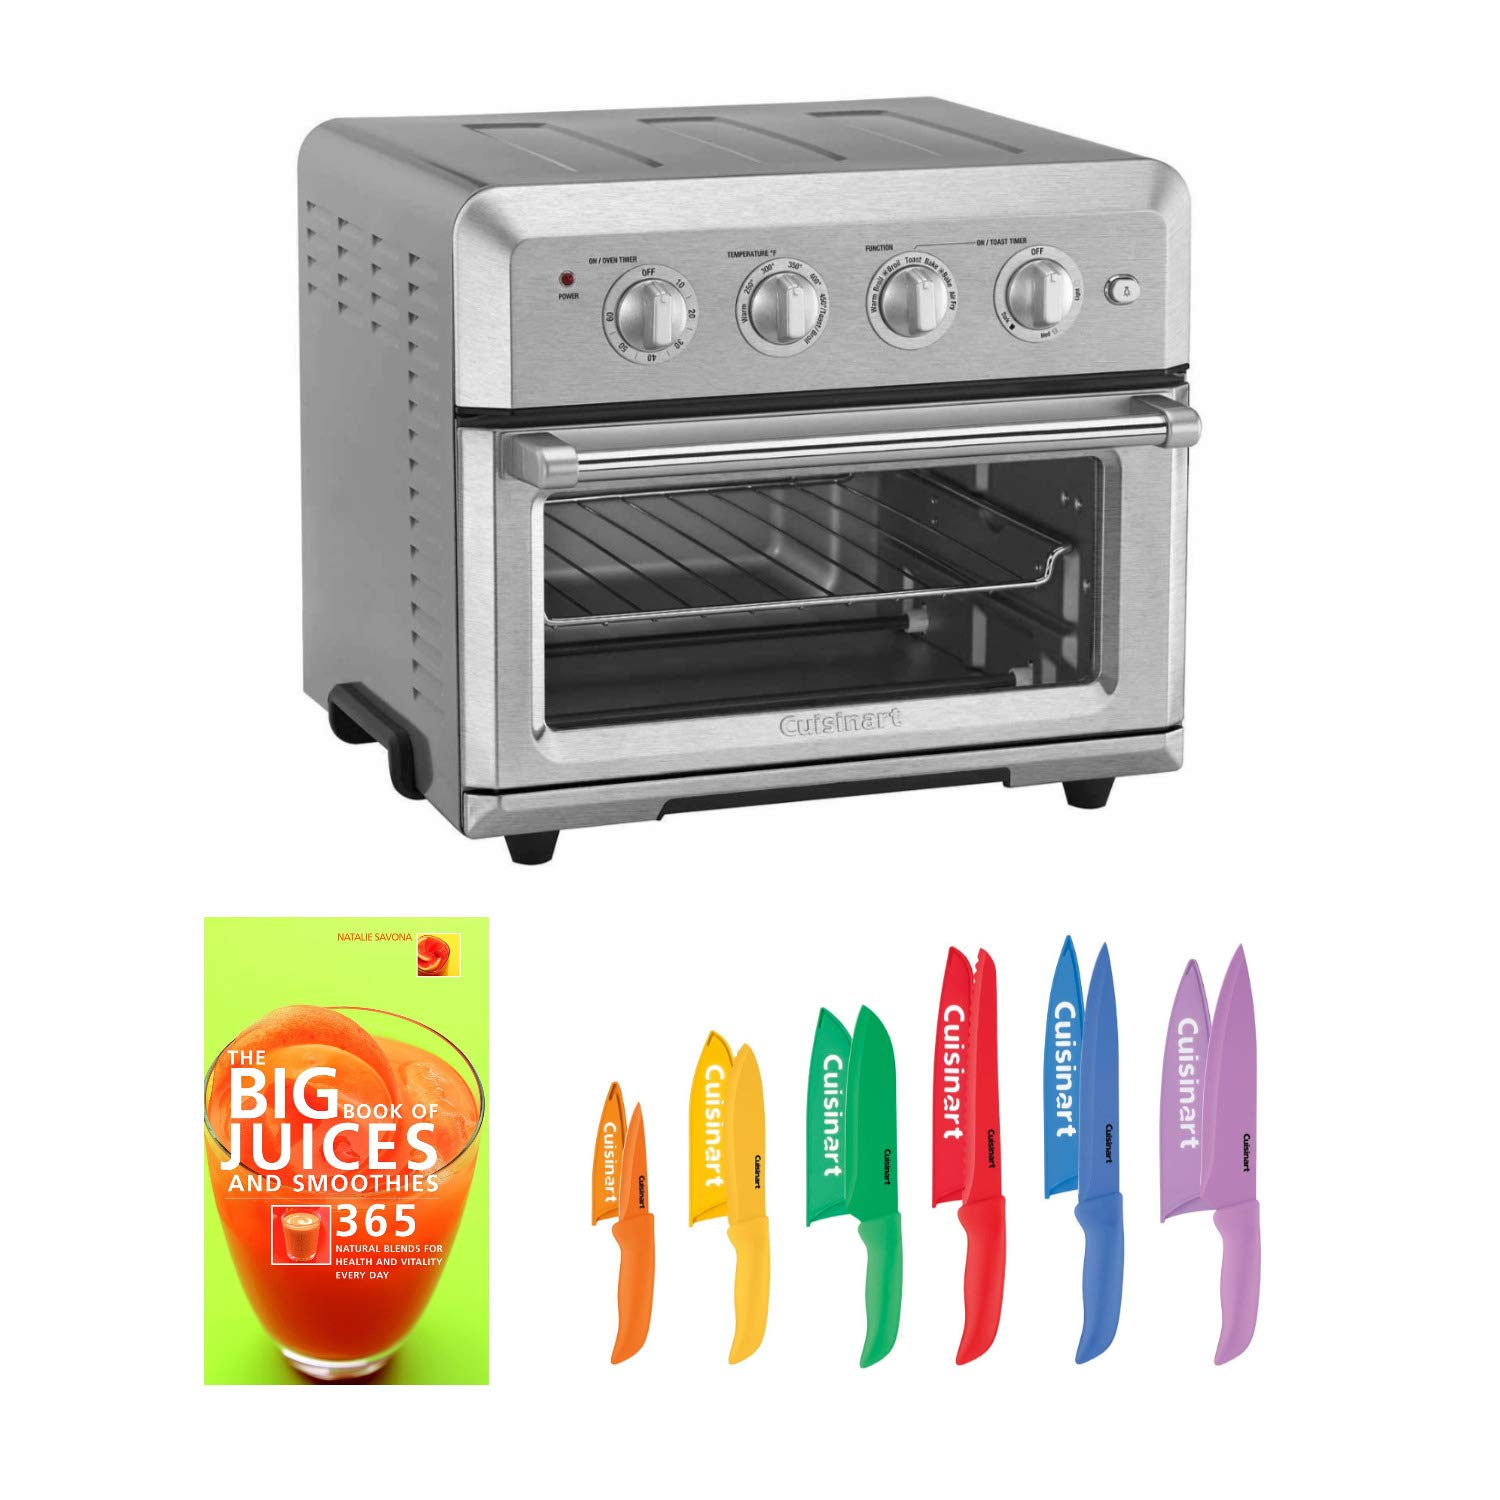 Cuisinart Air Fryer Toaster Oven, Silver (Renewed) with cookbook and 12 Piece Knife Set (Renewed) (3 Items)